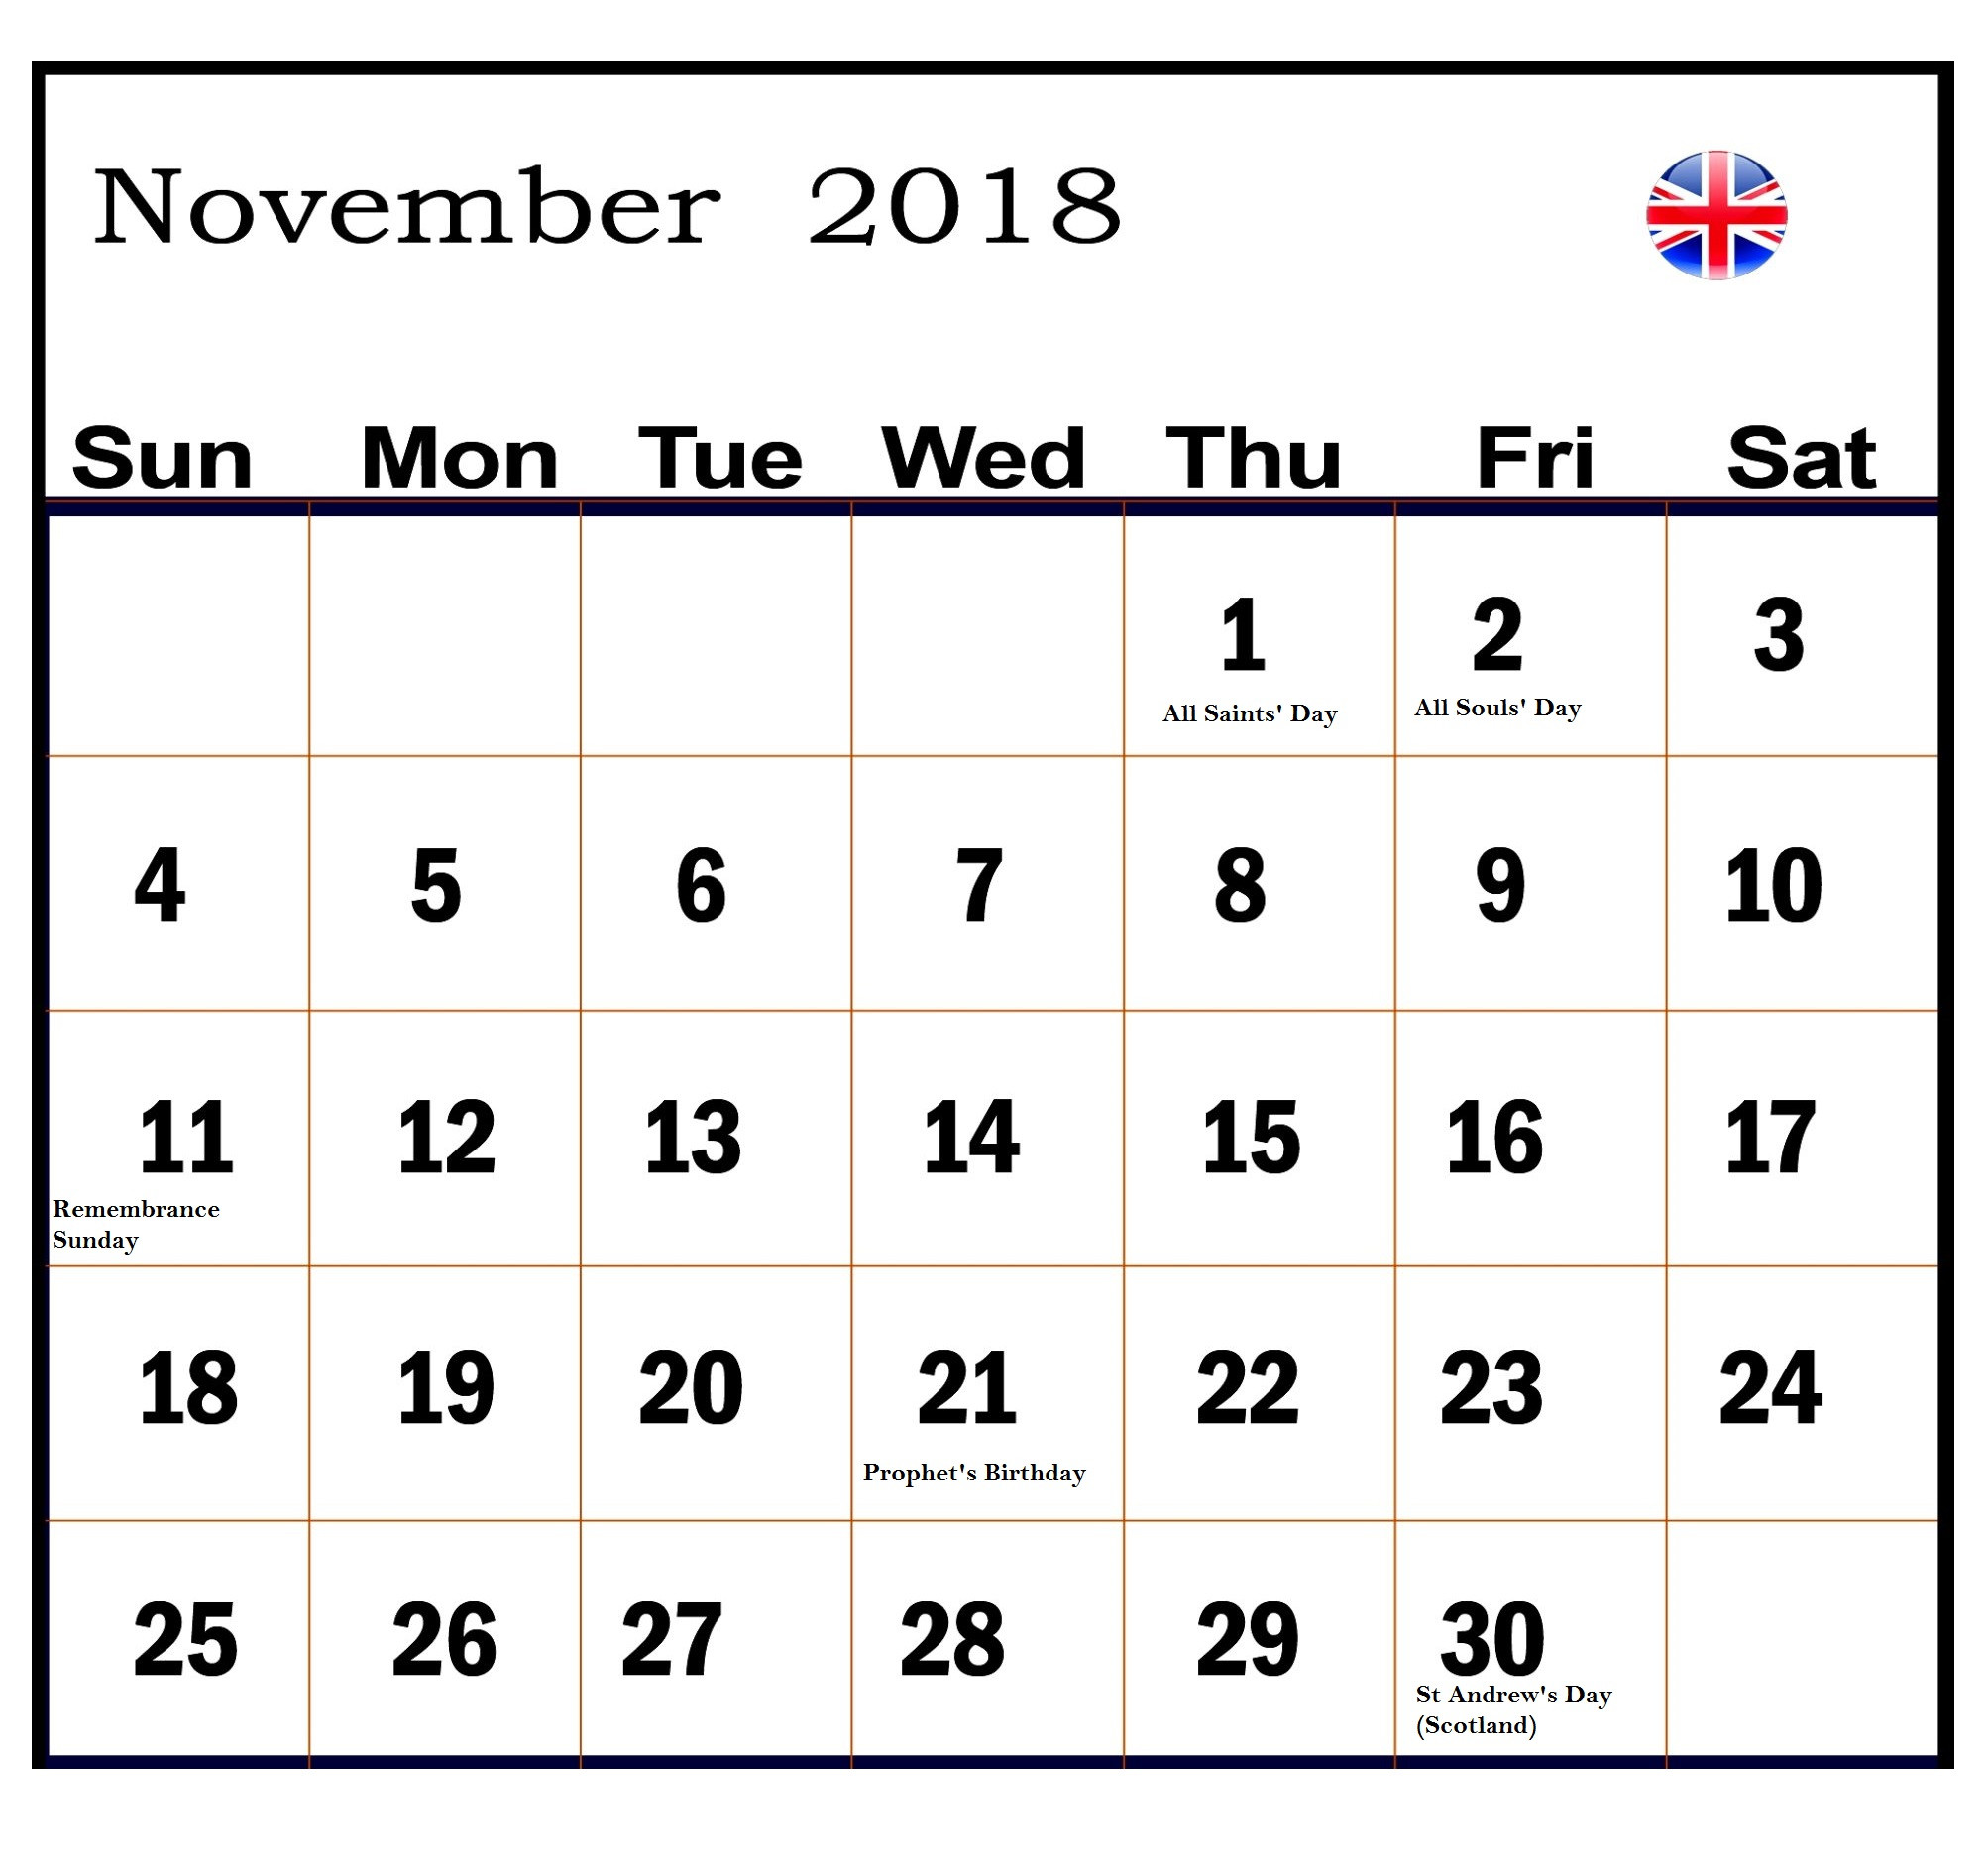 Holidays November 2018 Calendar UK